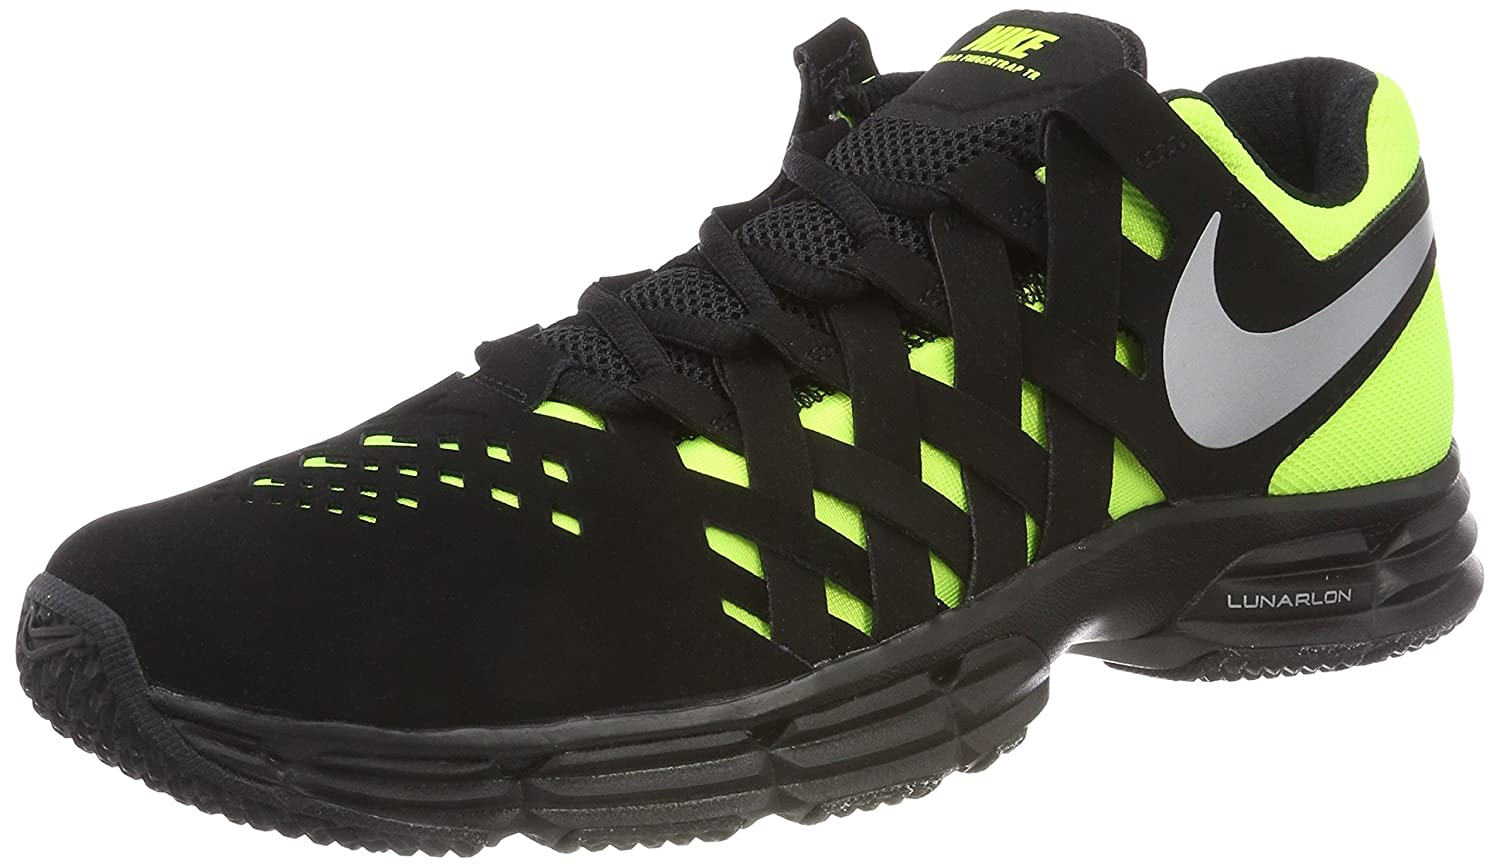 NIKE Men's Lunar Fingertrap Cross Trainer B00ITDUAQO 9.5 D(M) US|Black/Metallic Silver/Volt